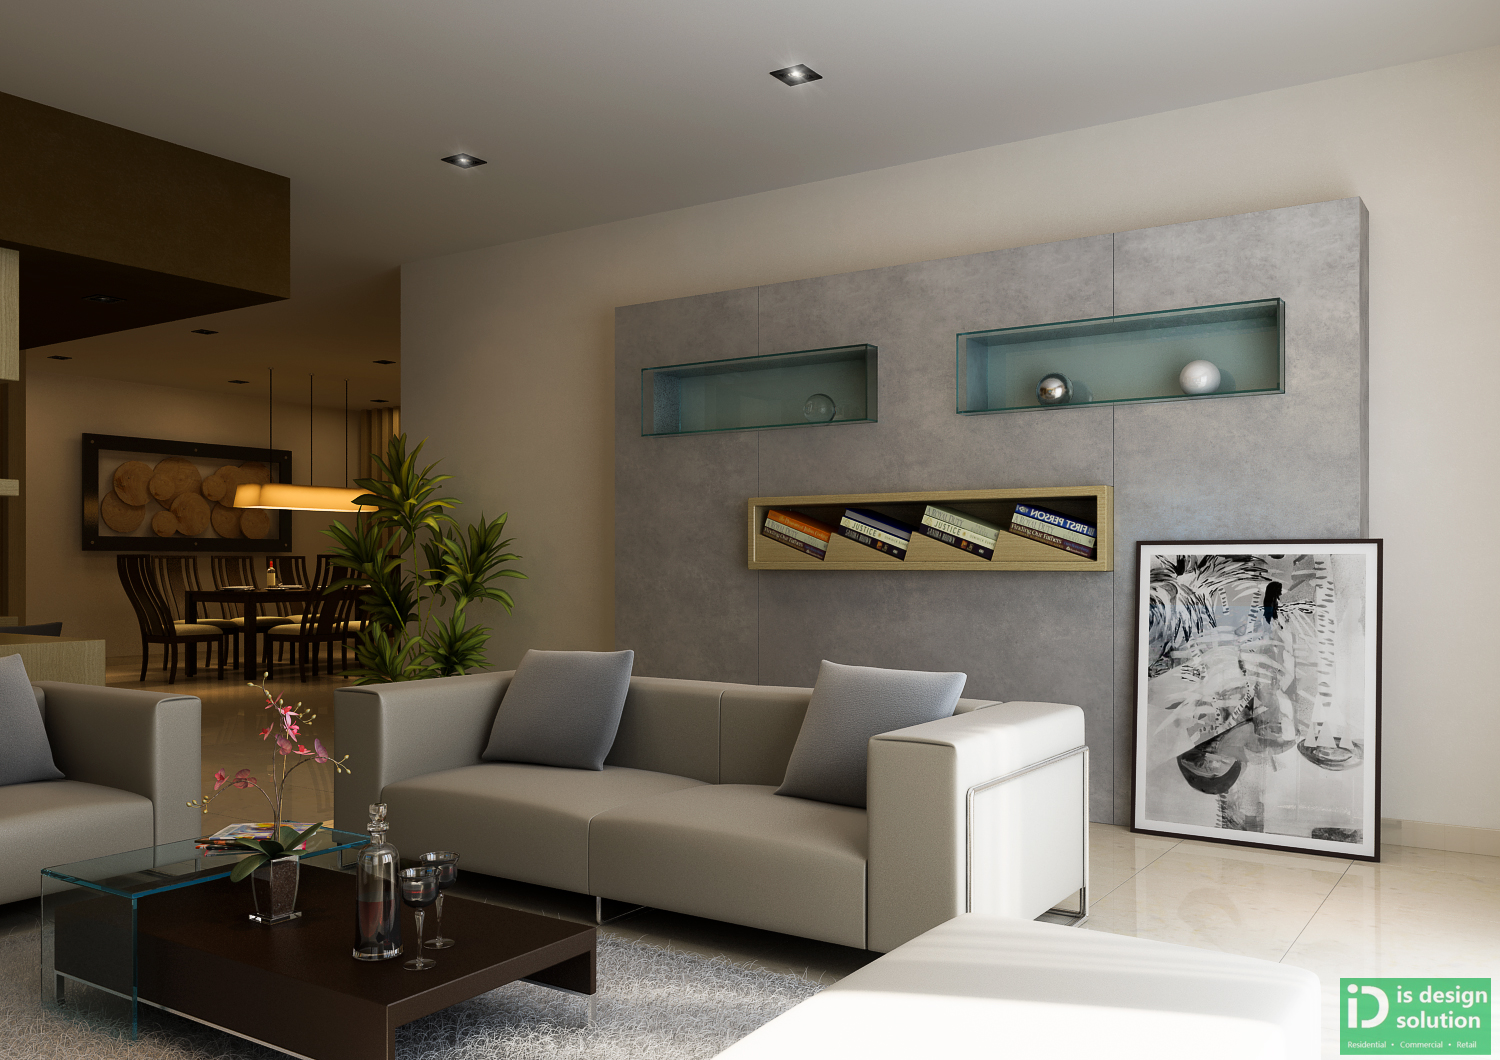 IS DESIGN SOLUTION: Interior Design